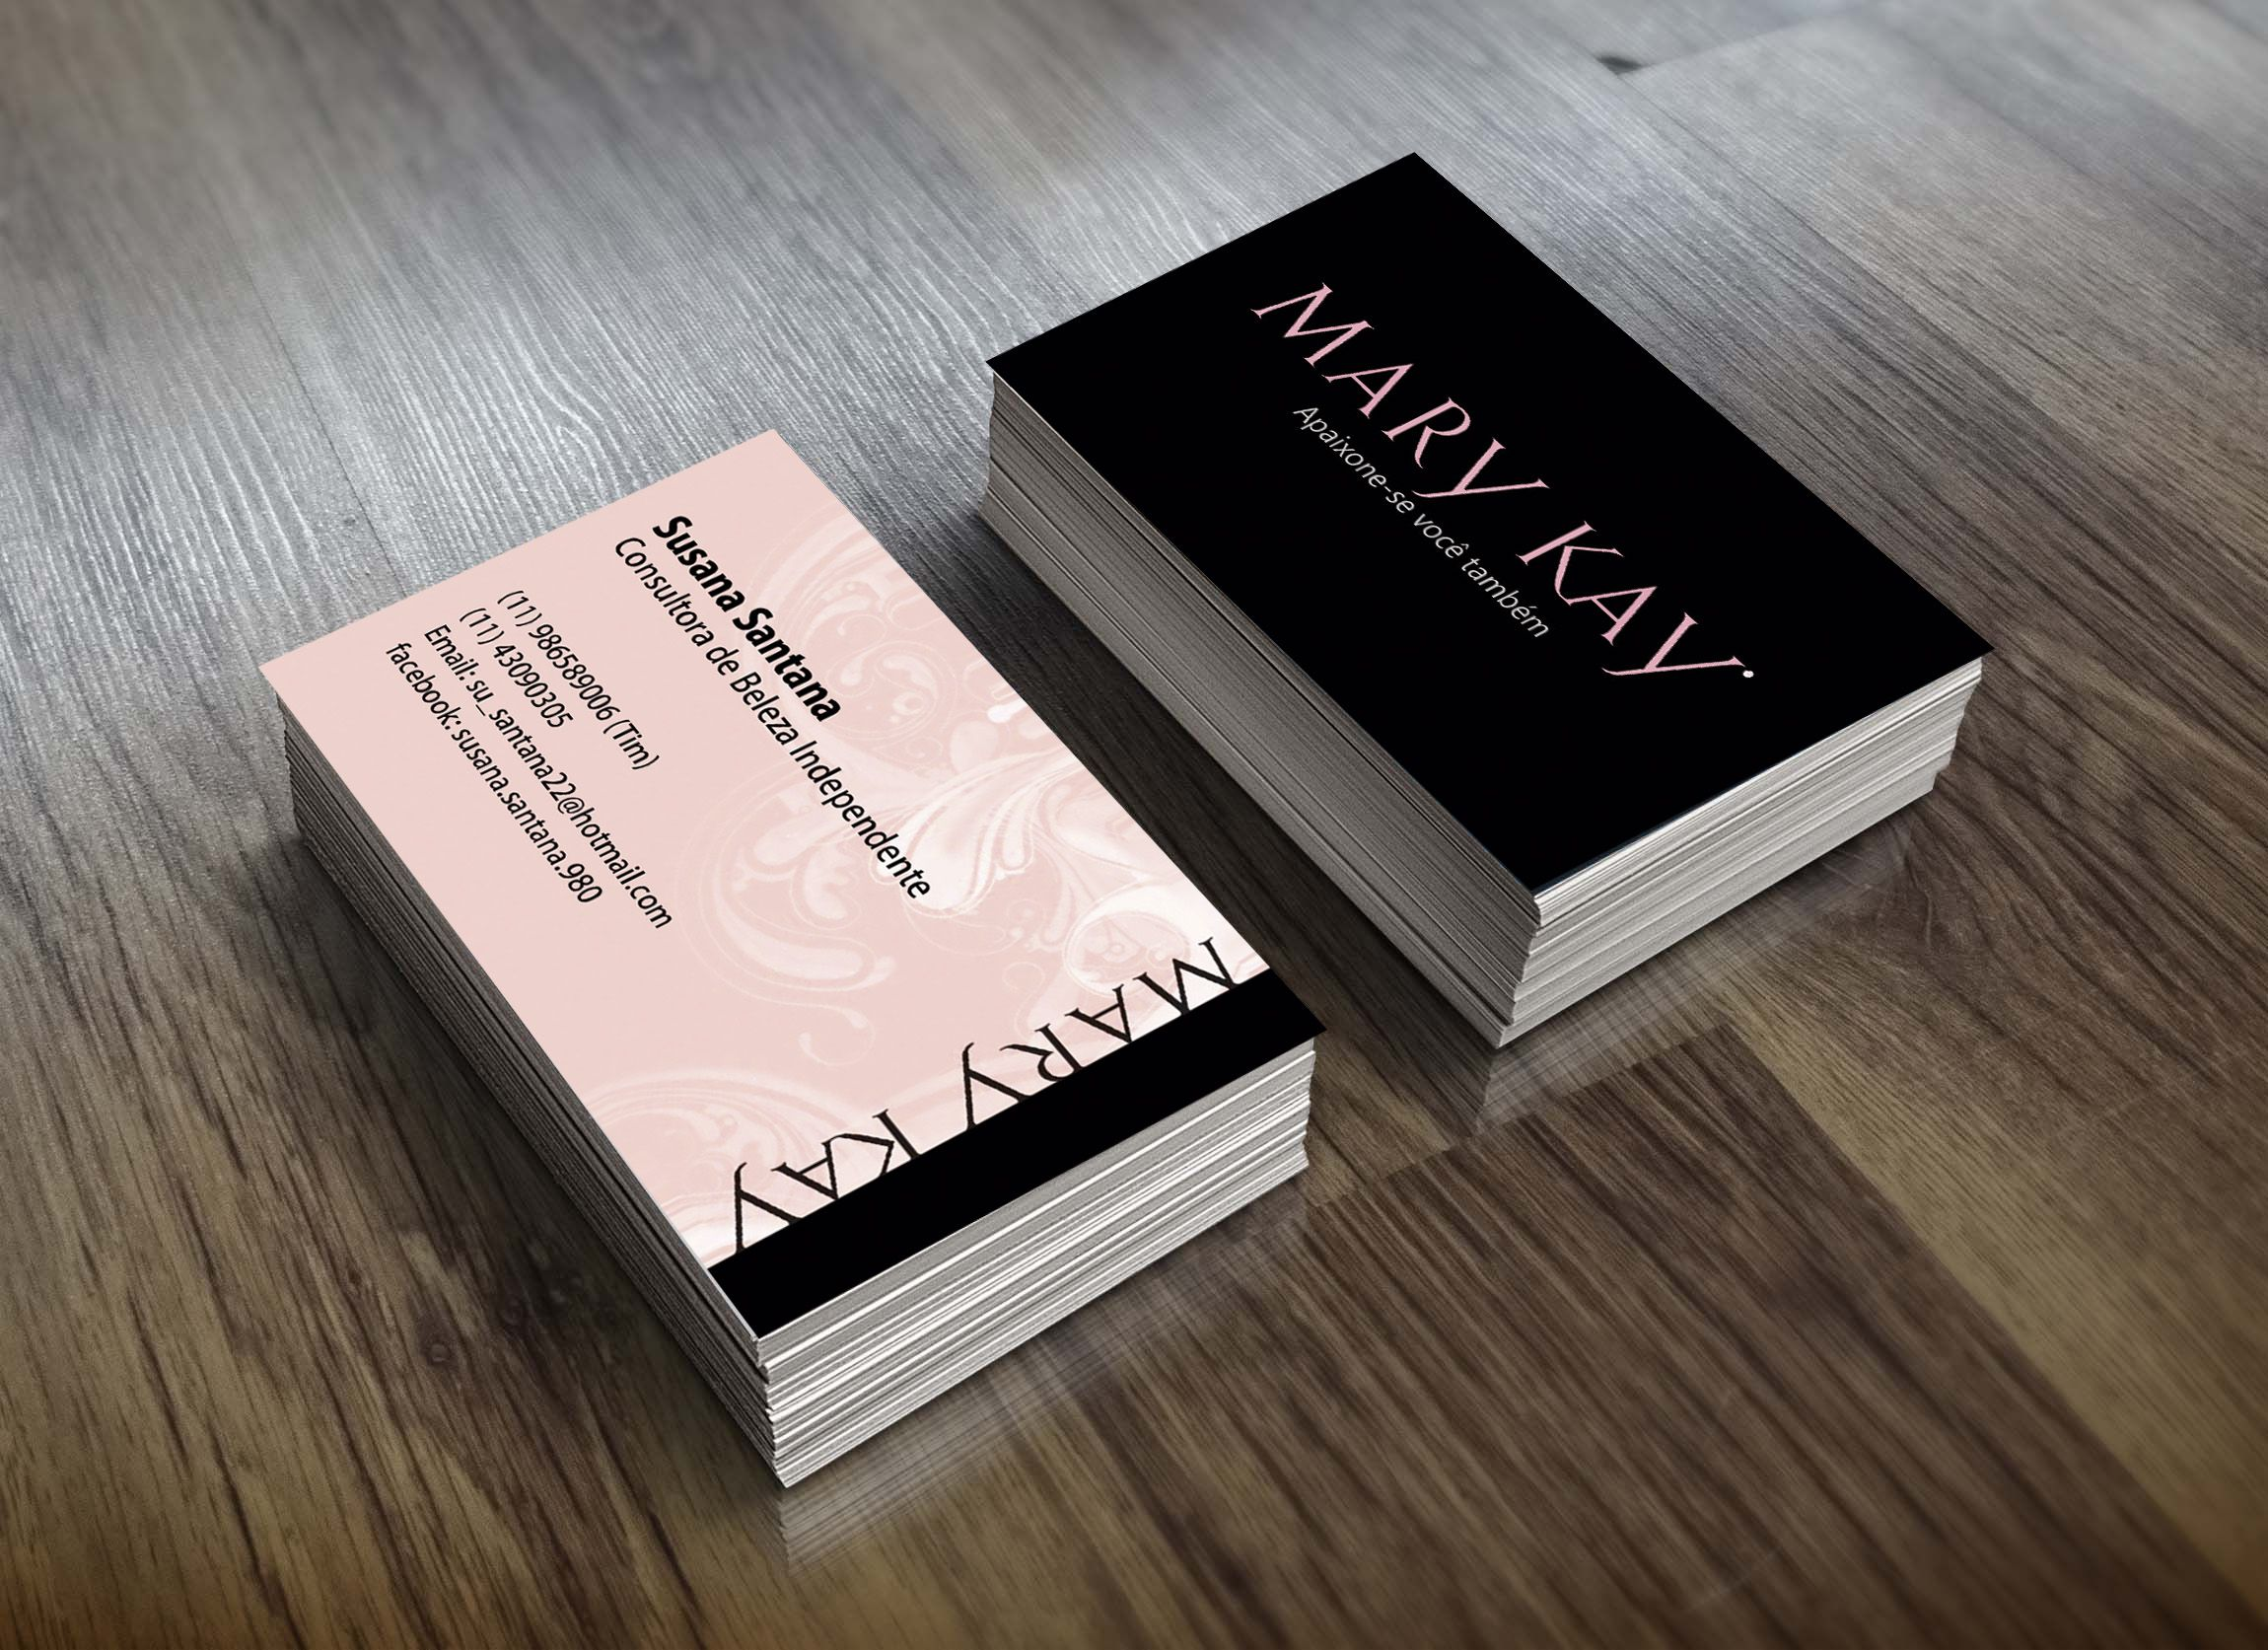 11211 marykay marykay1 business card template html code - 11211 Marykay Marykay1 Business Card Template Html Code Cart O De Visita Mary Kay Business Download